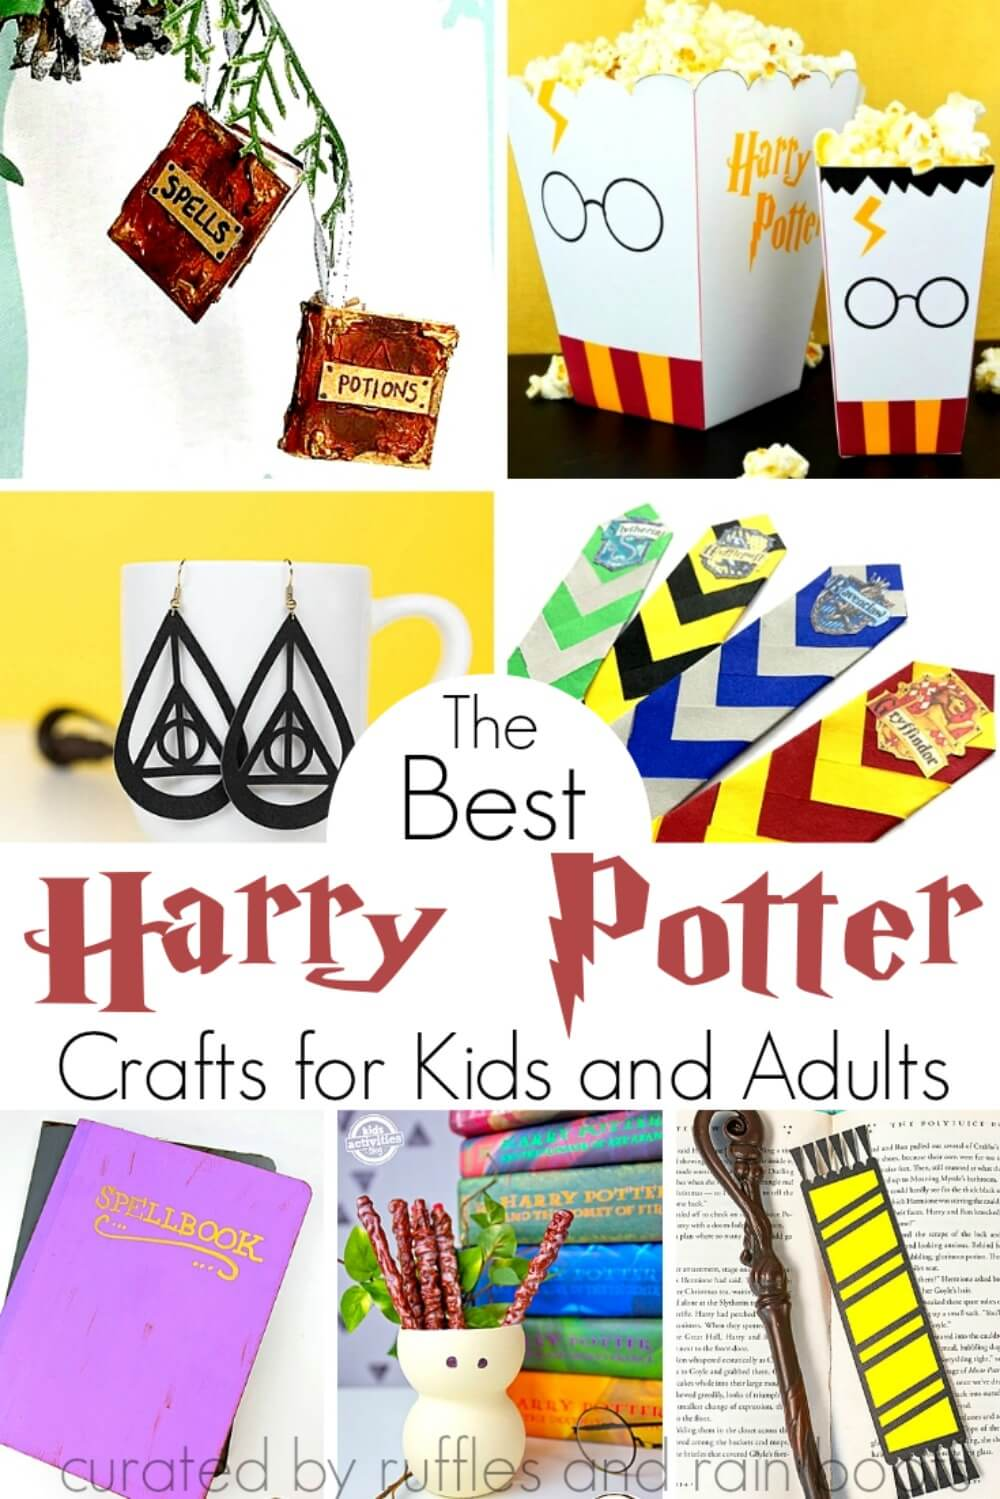 Magical Harry Potter Crafts for Kids and Adults with text which reads best harry potter crafts for kids and adults